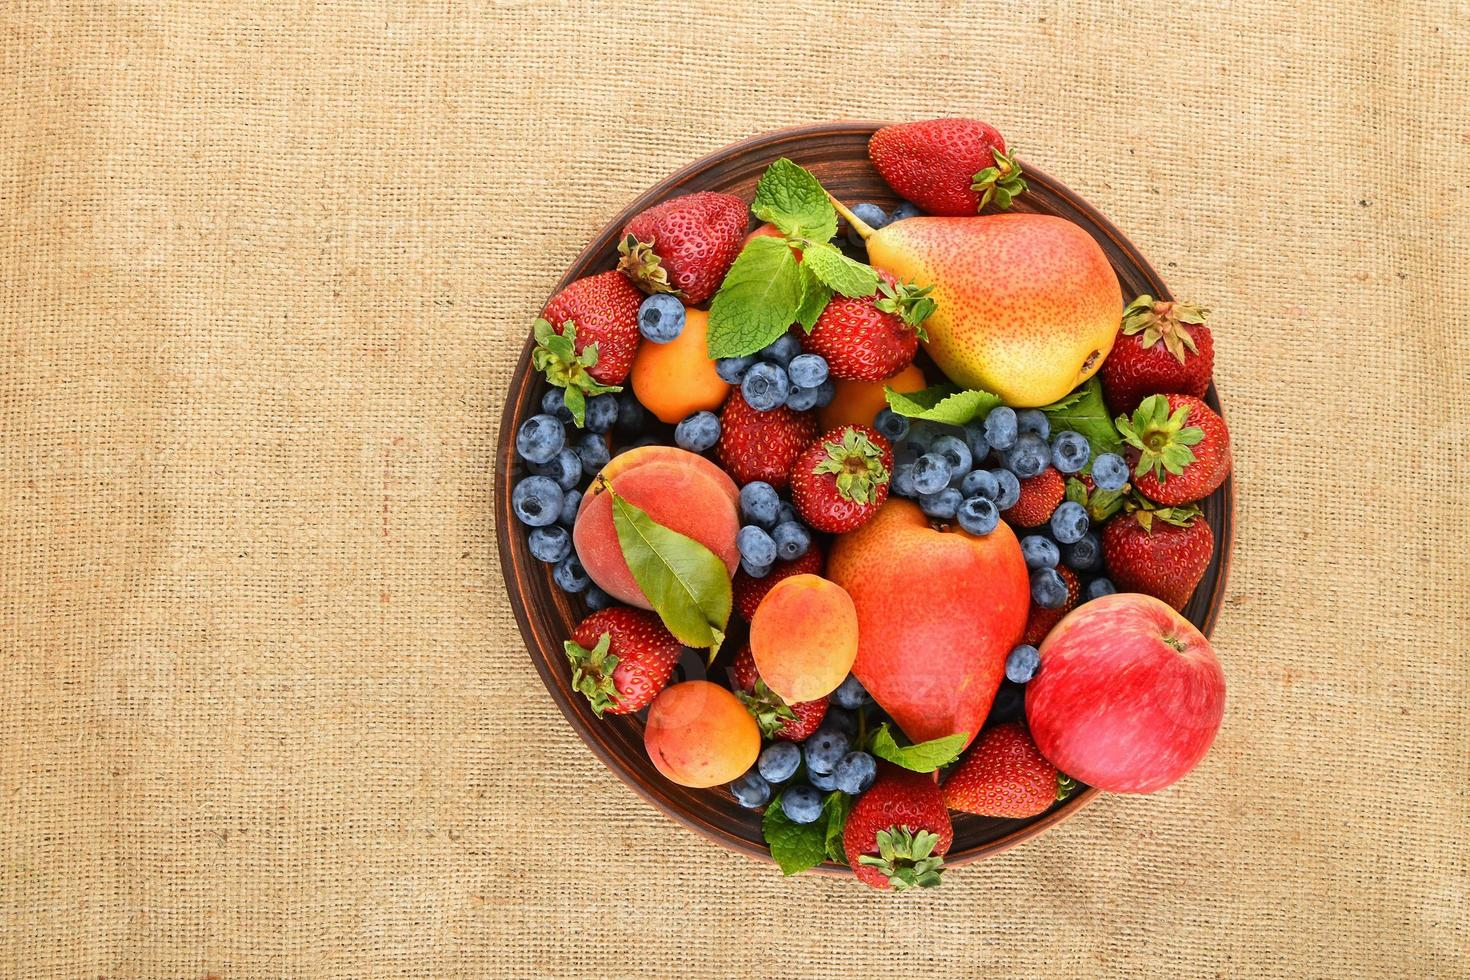 Fruits and berries mix in ceramic plate on burlap canvas photo